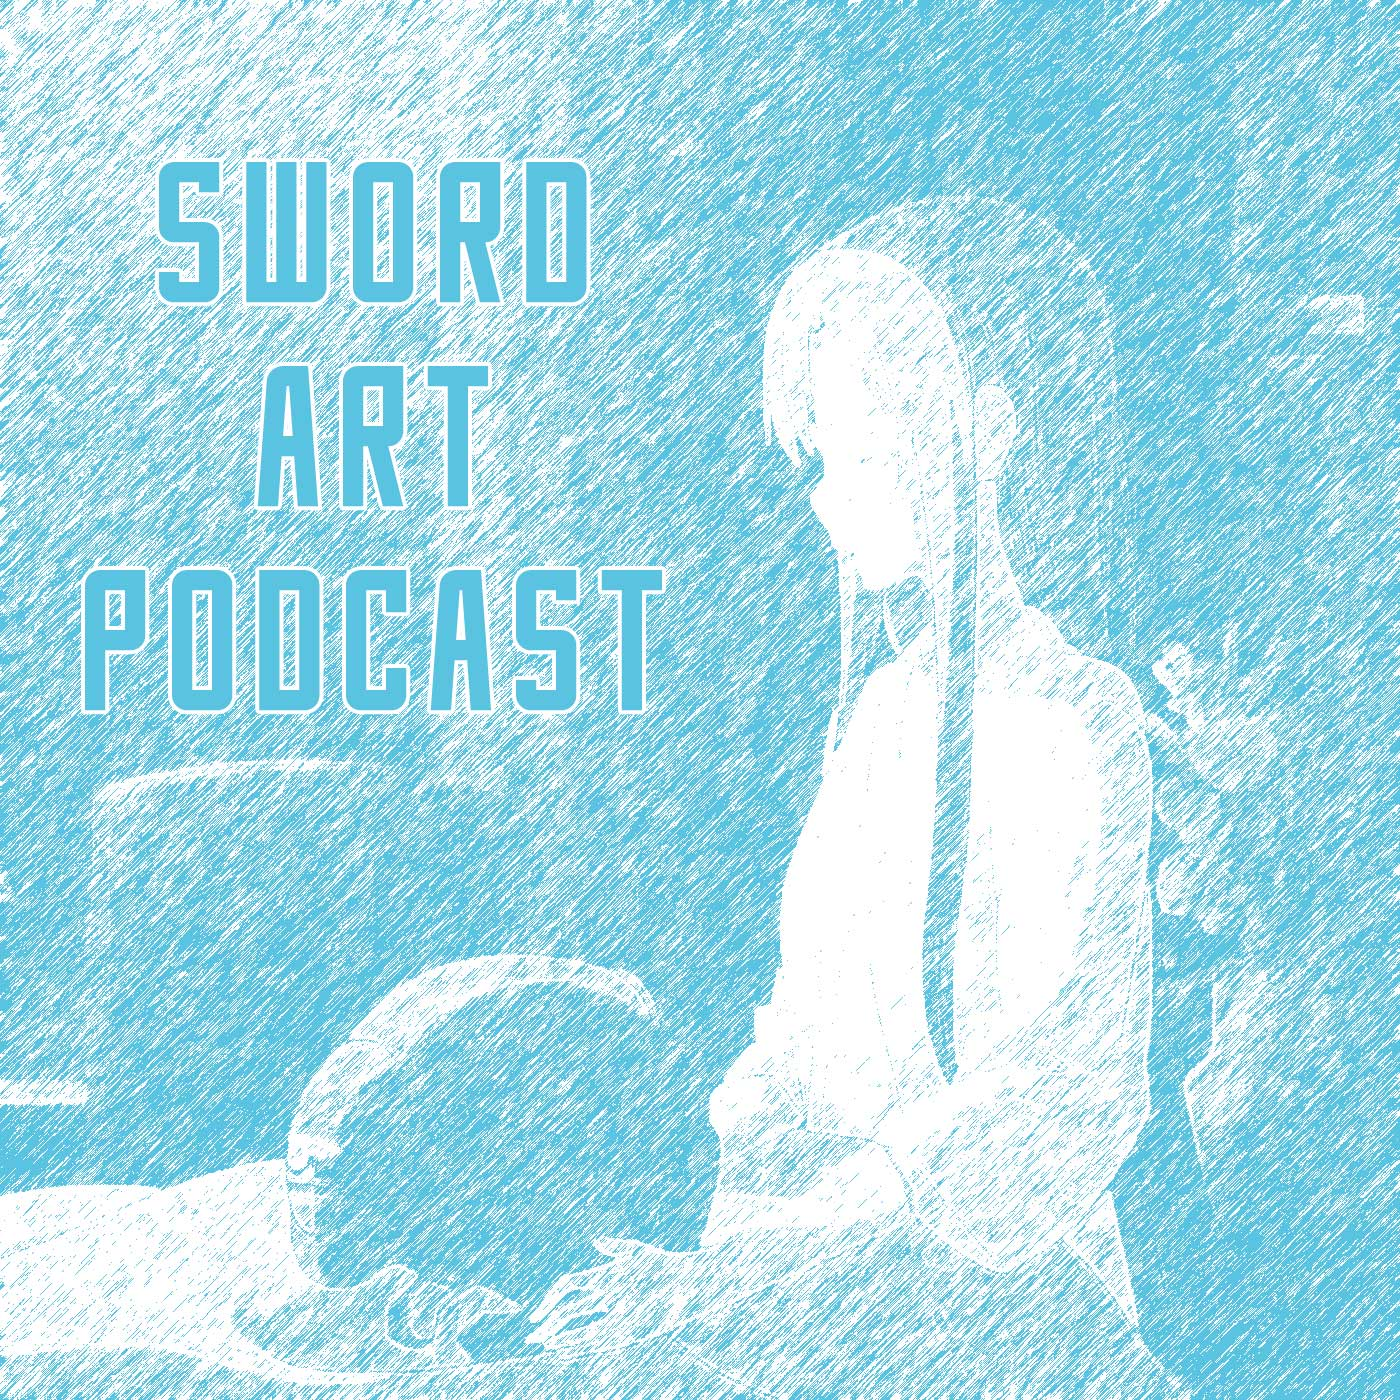 Sword Art Podcast